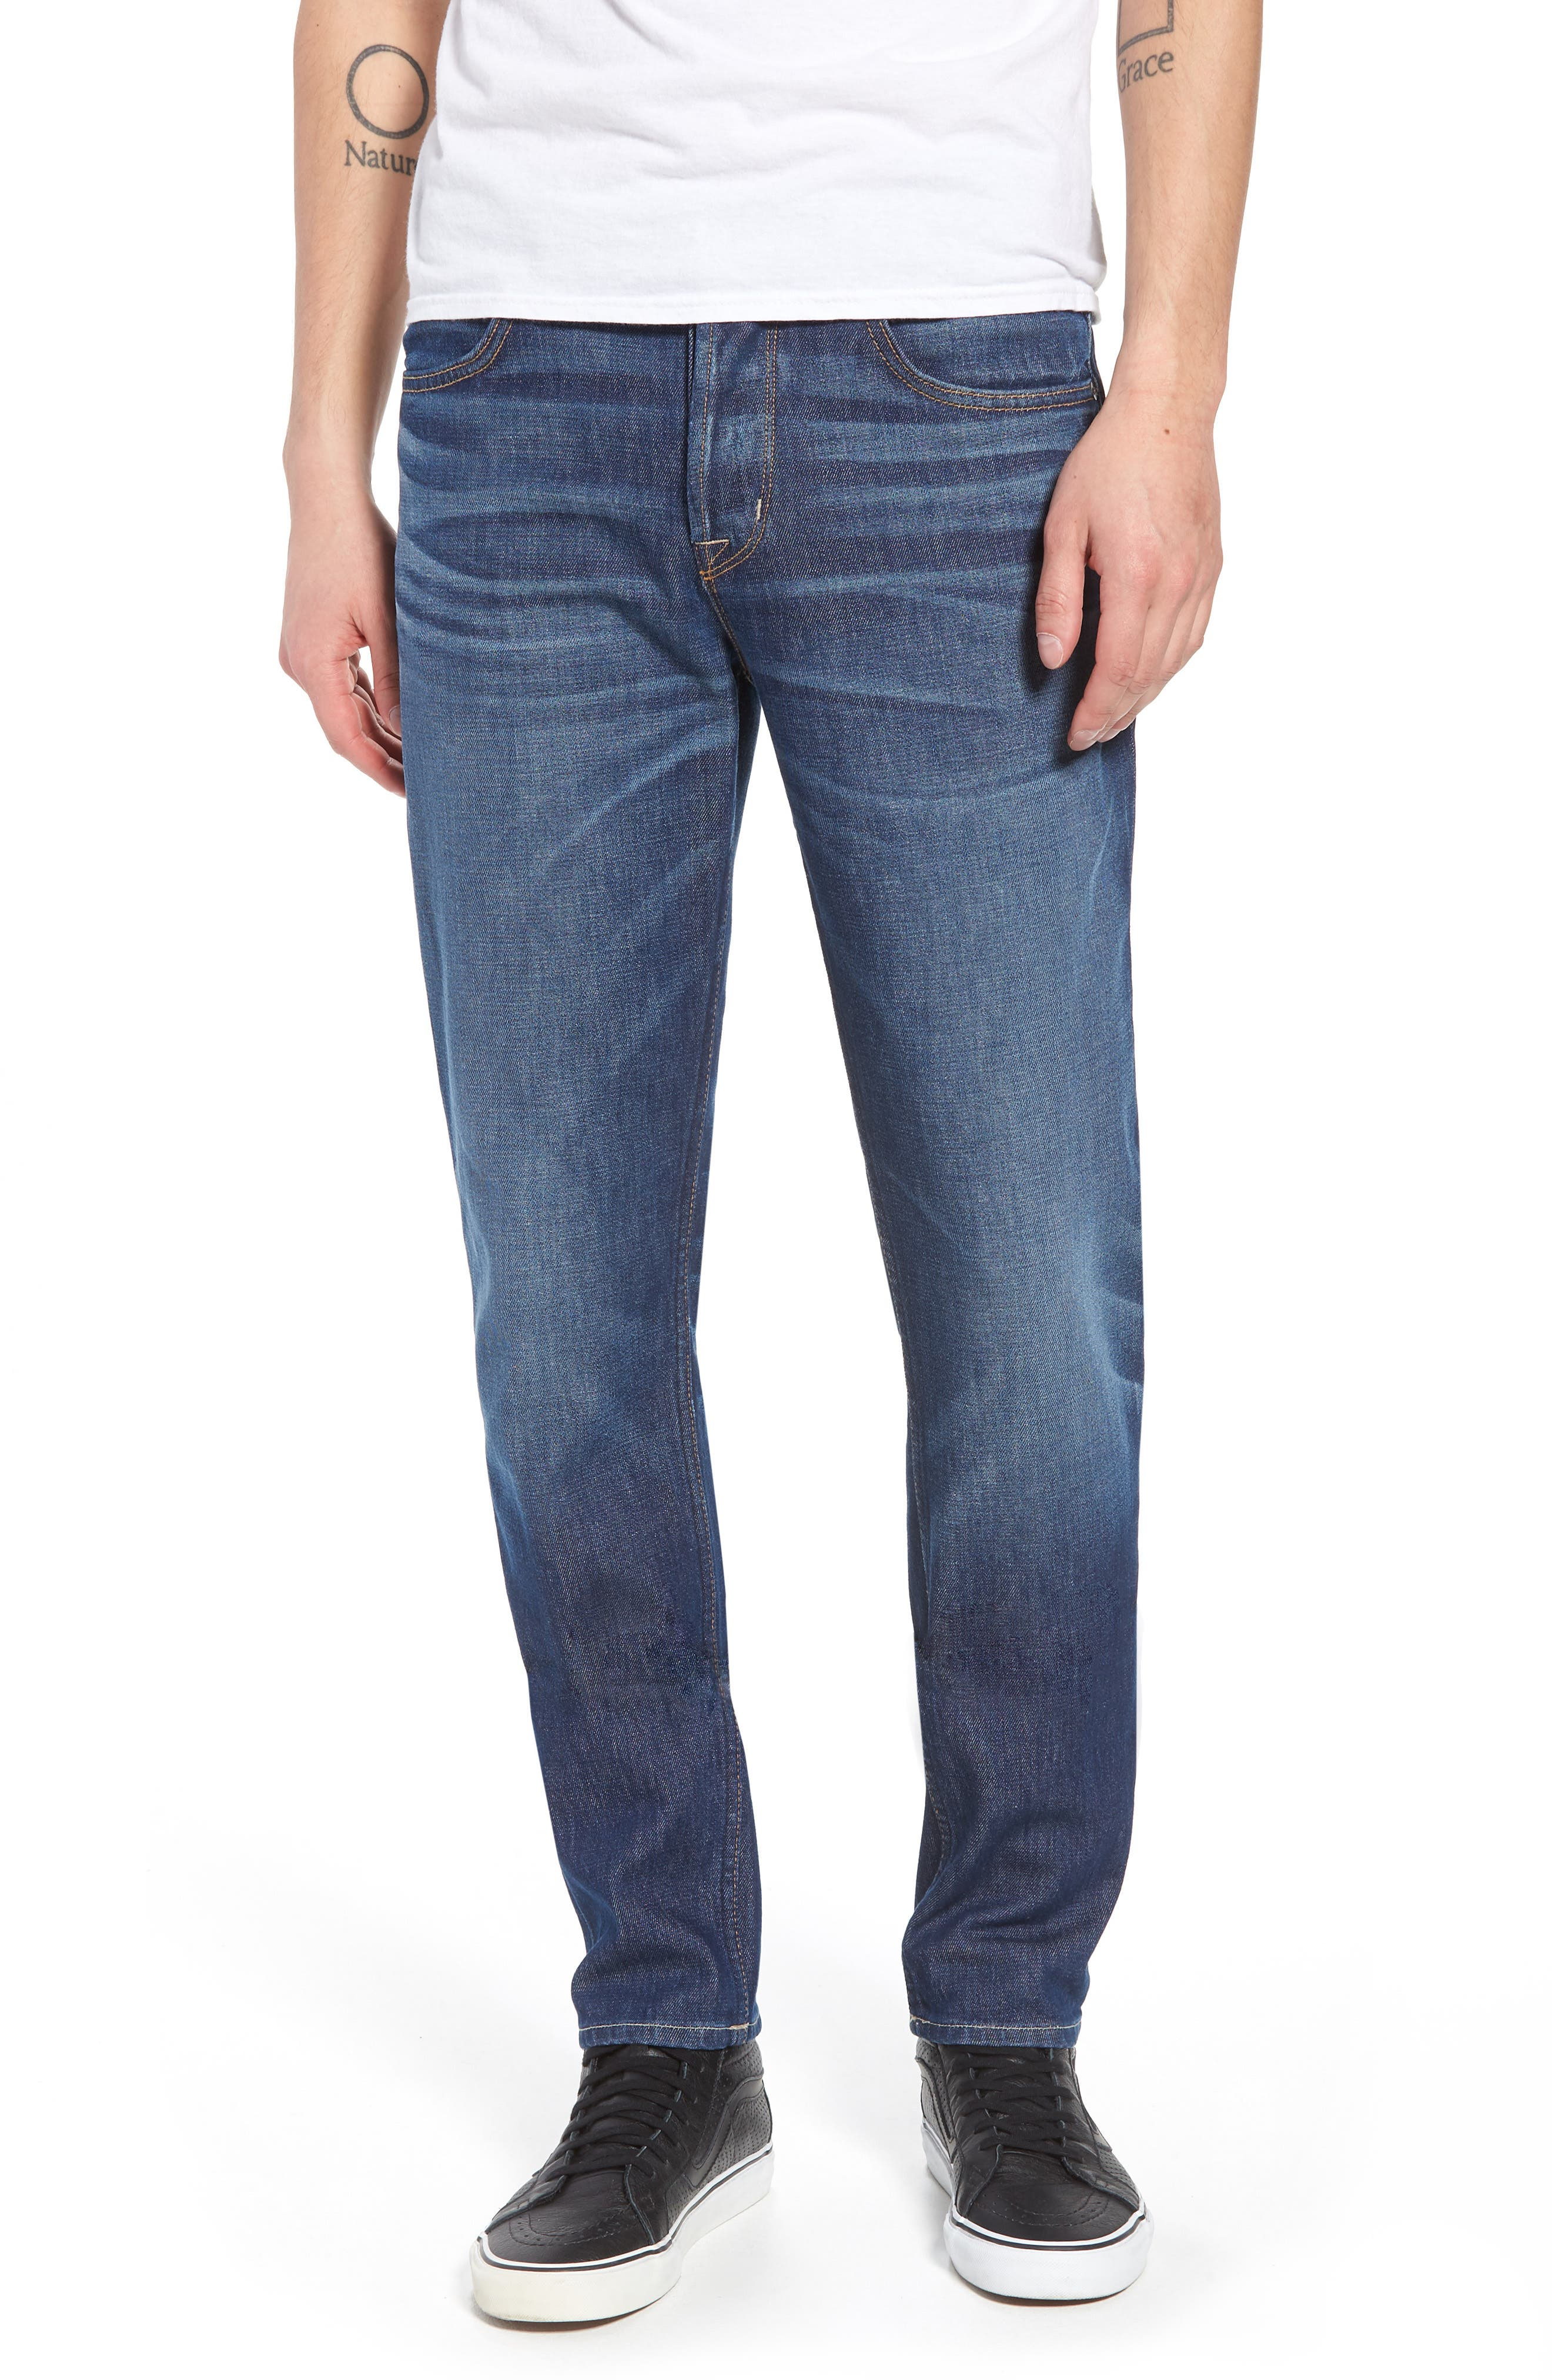 Axl Skinny Fit Jeans,                             Main thumbnail 1, color,                             425